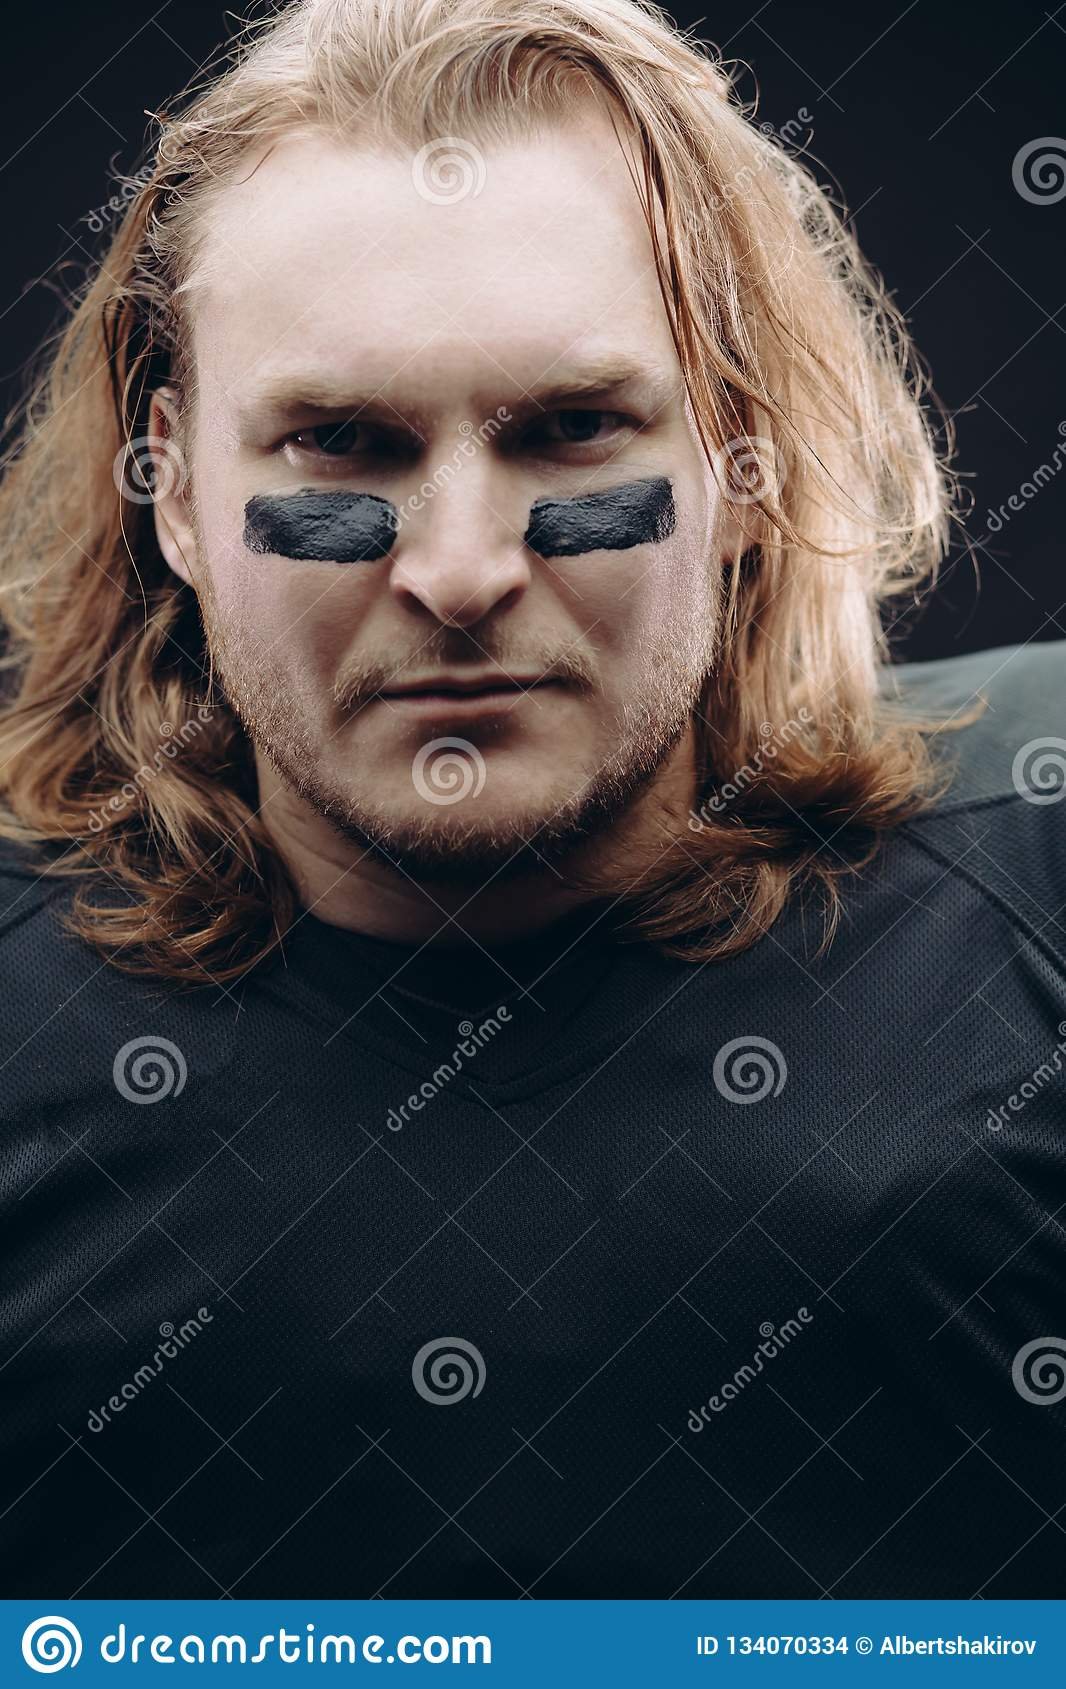 Determined American Football Player Posing With Painted Face And